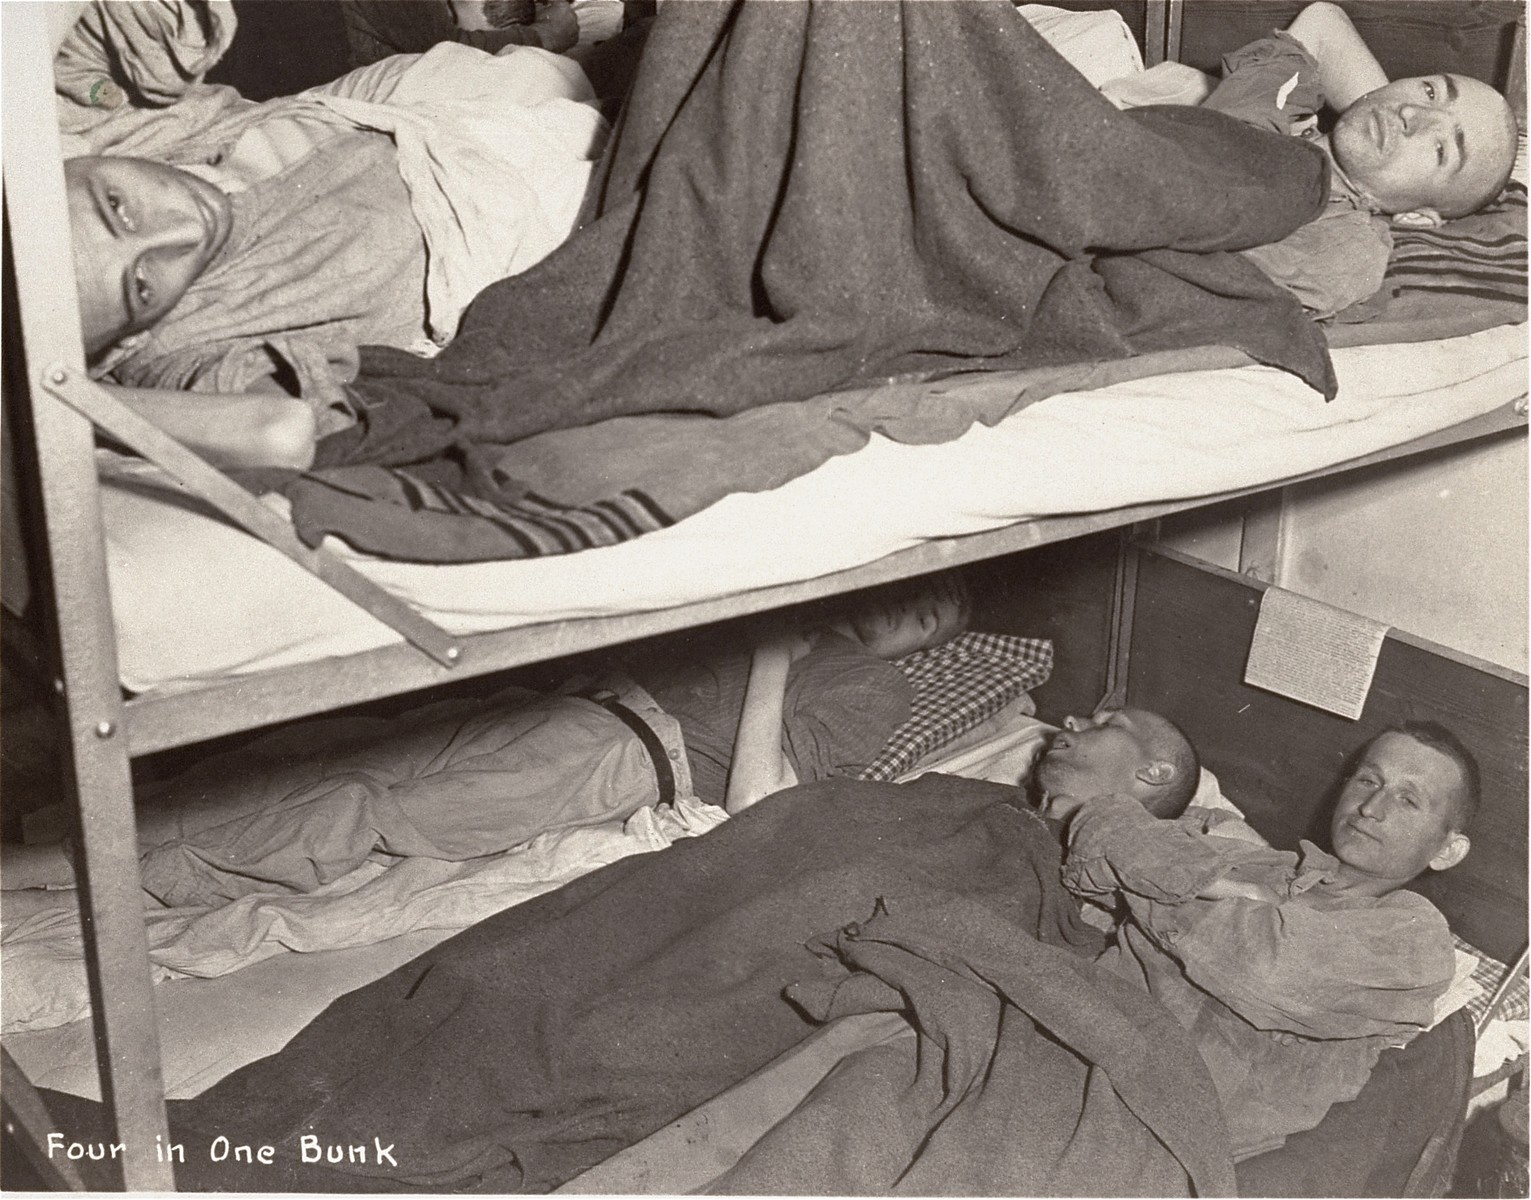 Survivors in a hospital ward after liberation.